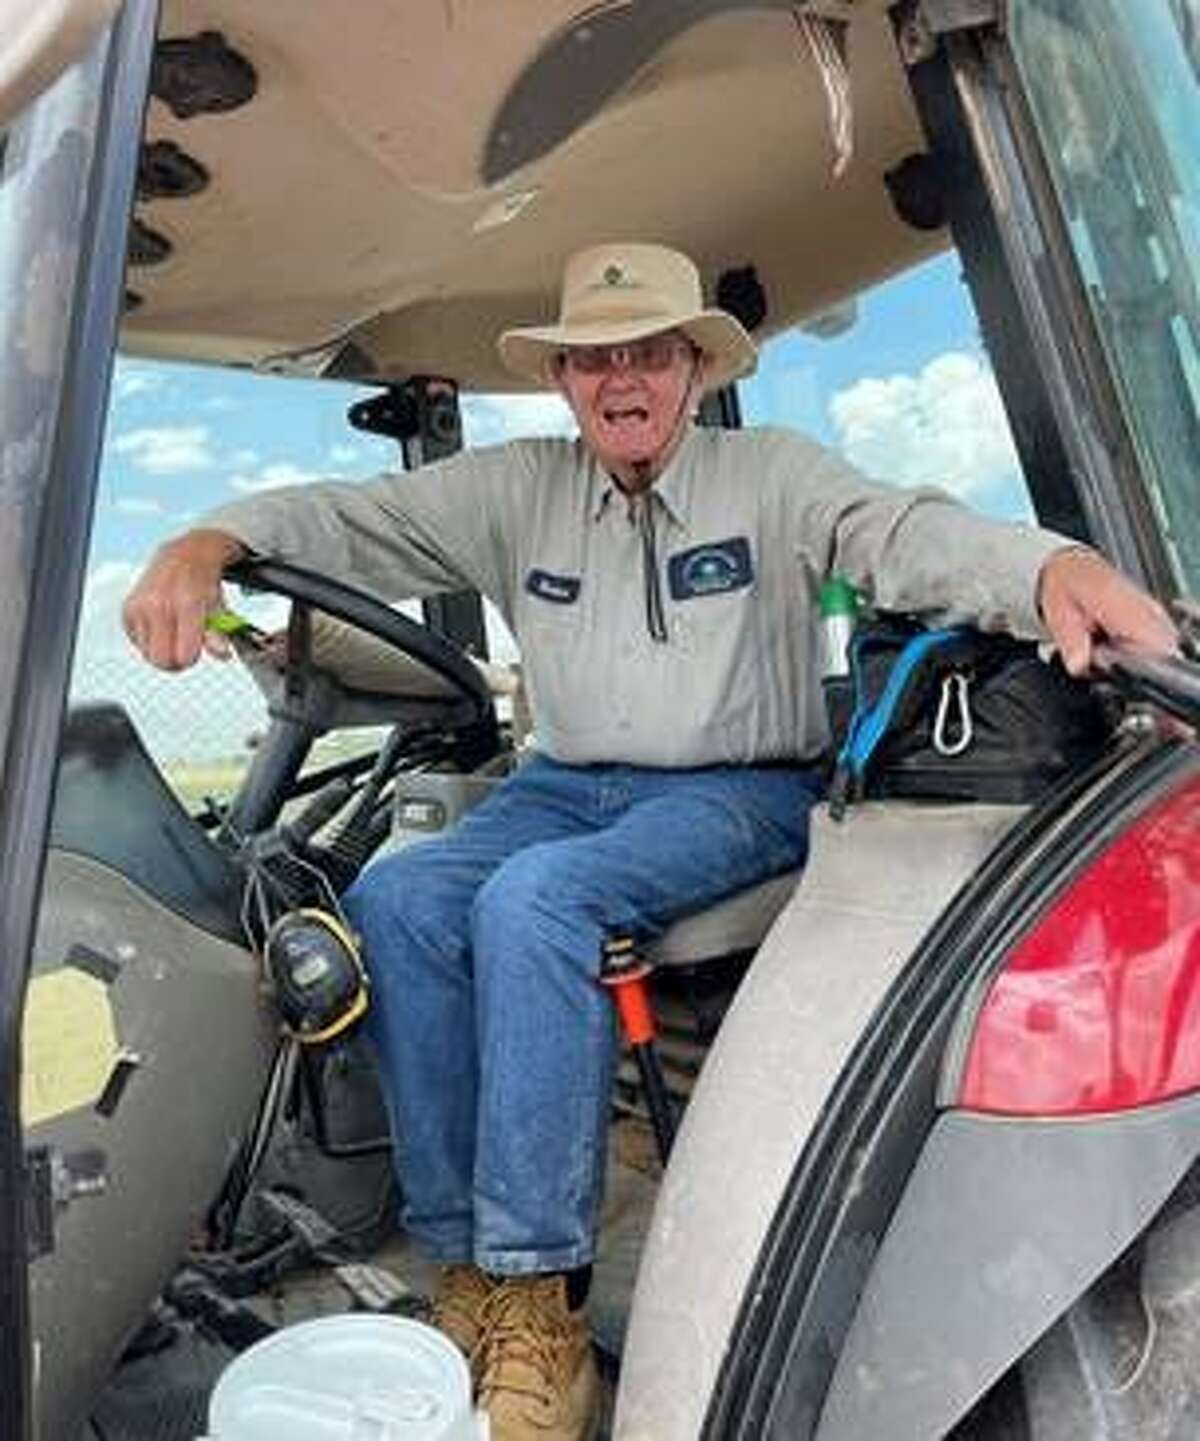 Robert Harmel, Landfill Spotter, is scheduled to retire from the City of Plainview on Wednesday. Harmel served the City for more than 26 years as a Heavy Equipment Operator and Landfill Spotter. Thank you for your service and best wishes!